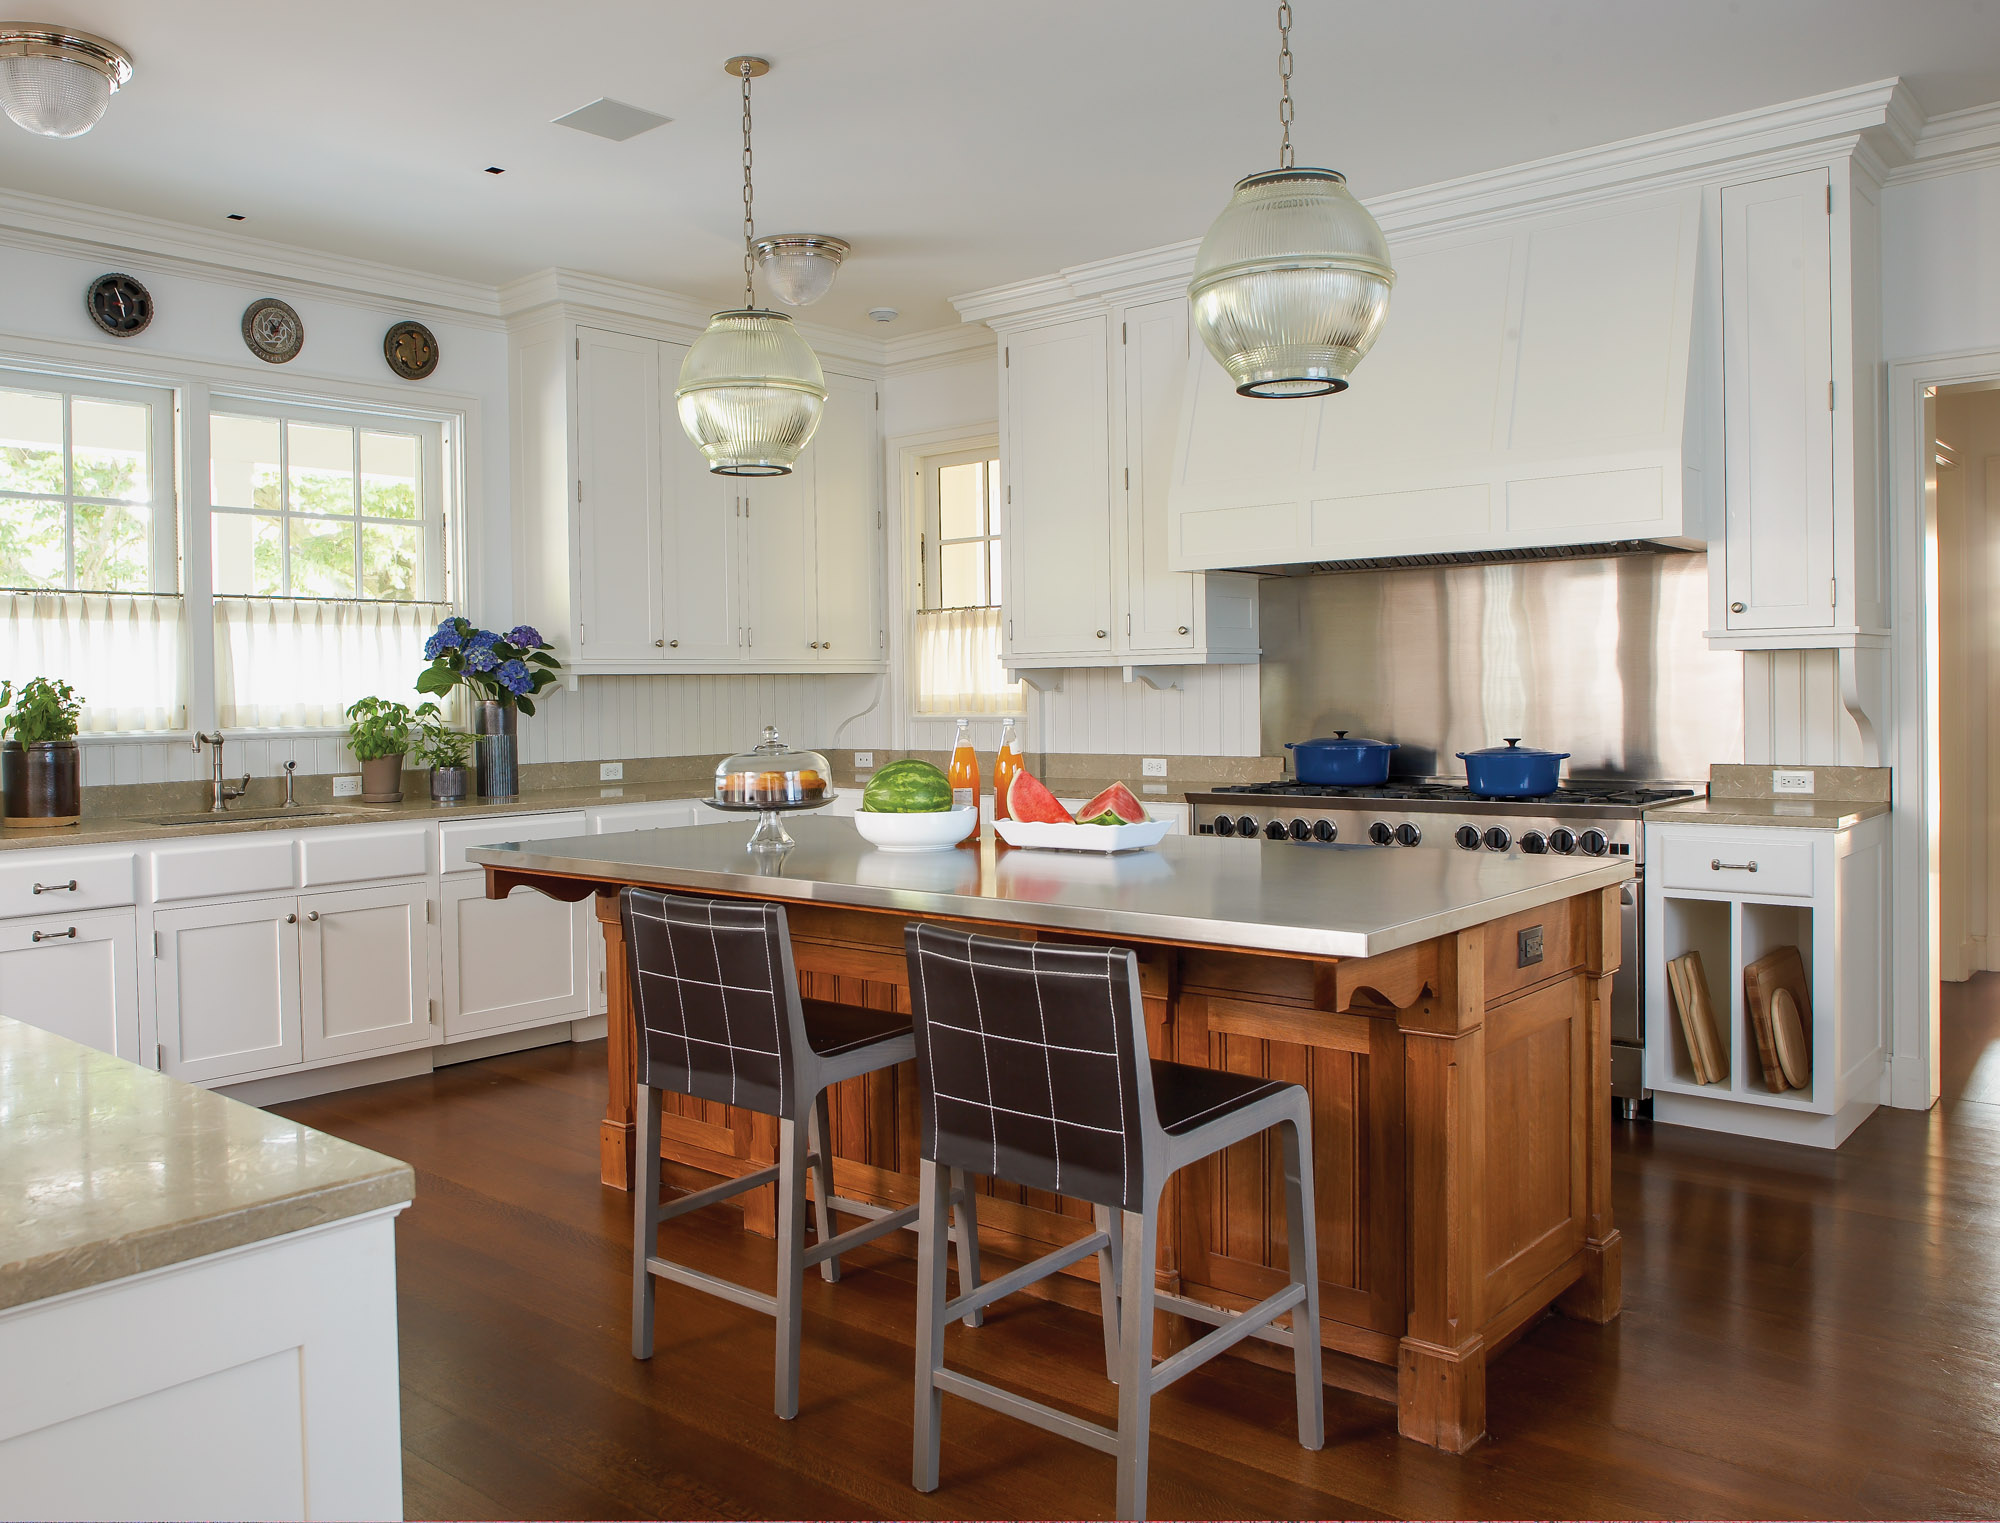 In purposeful contrast to the white-painted cabinets, the kitchen island has a natural wood finish. A large commercial range is perfect for a family who love to cook and entertain.